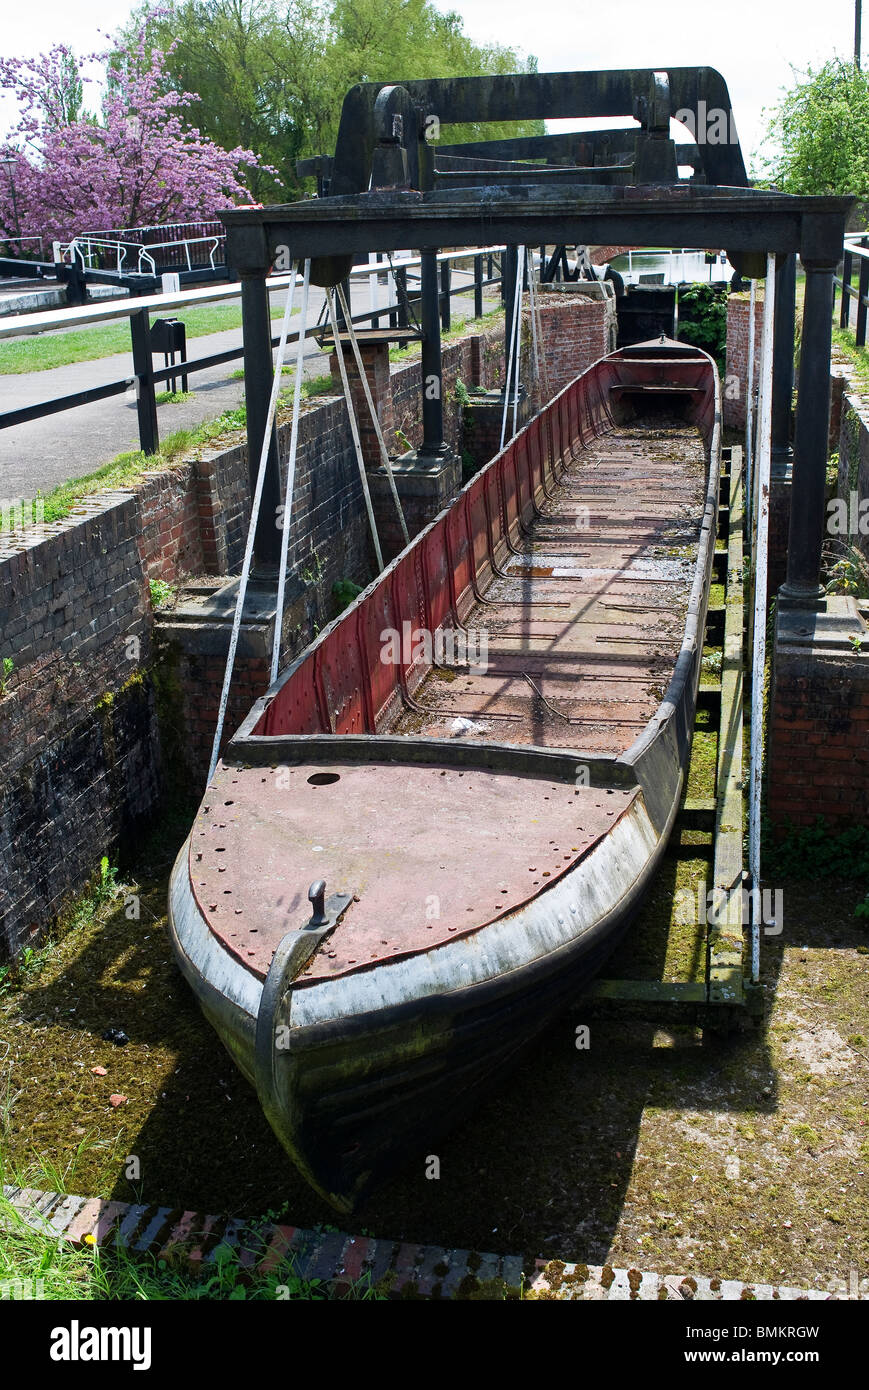 Old canal barge in dry dock at Stoke Bruerne UK - Stock Image